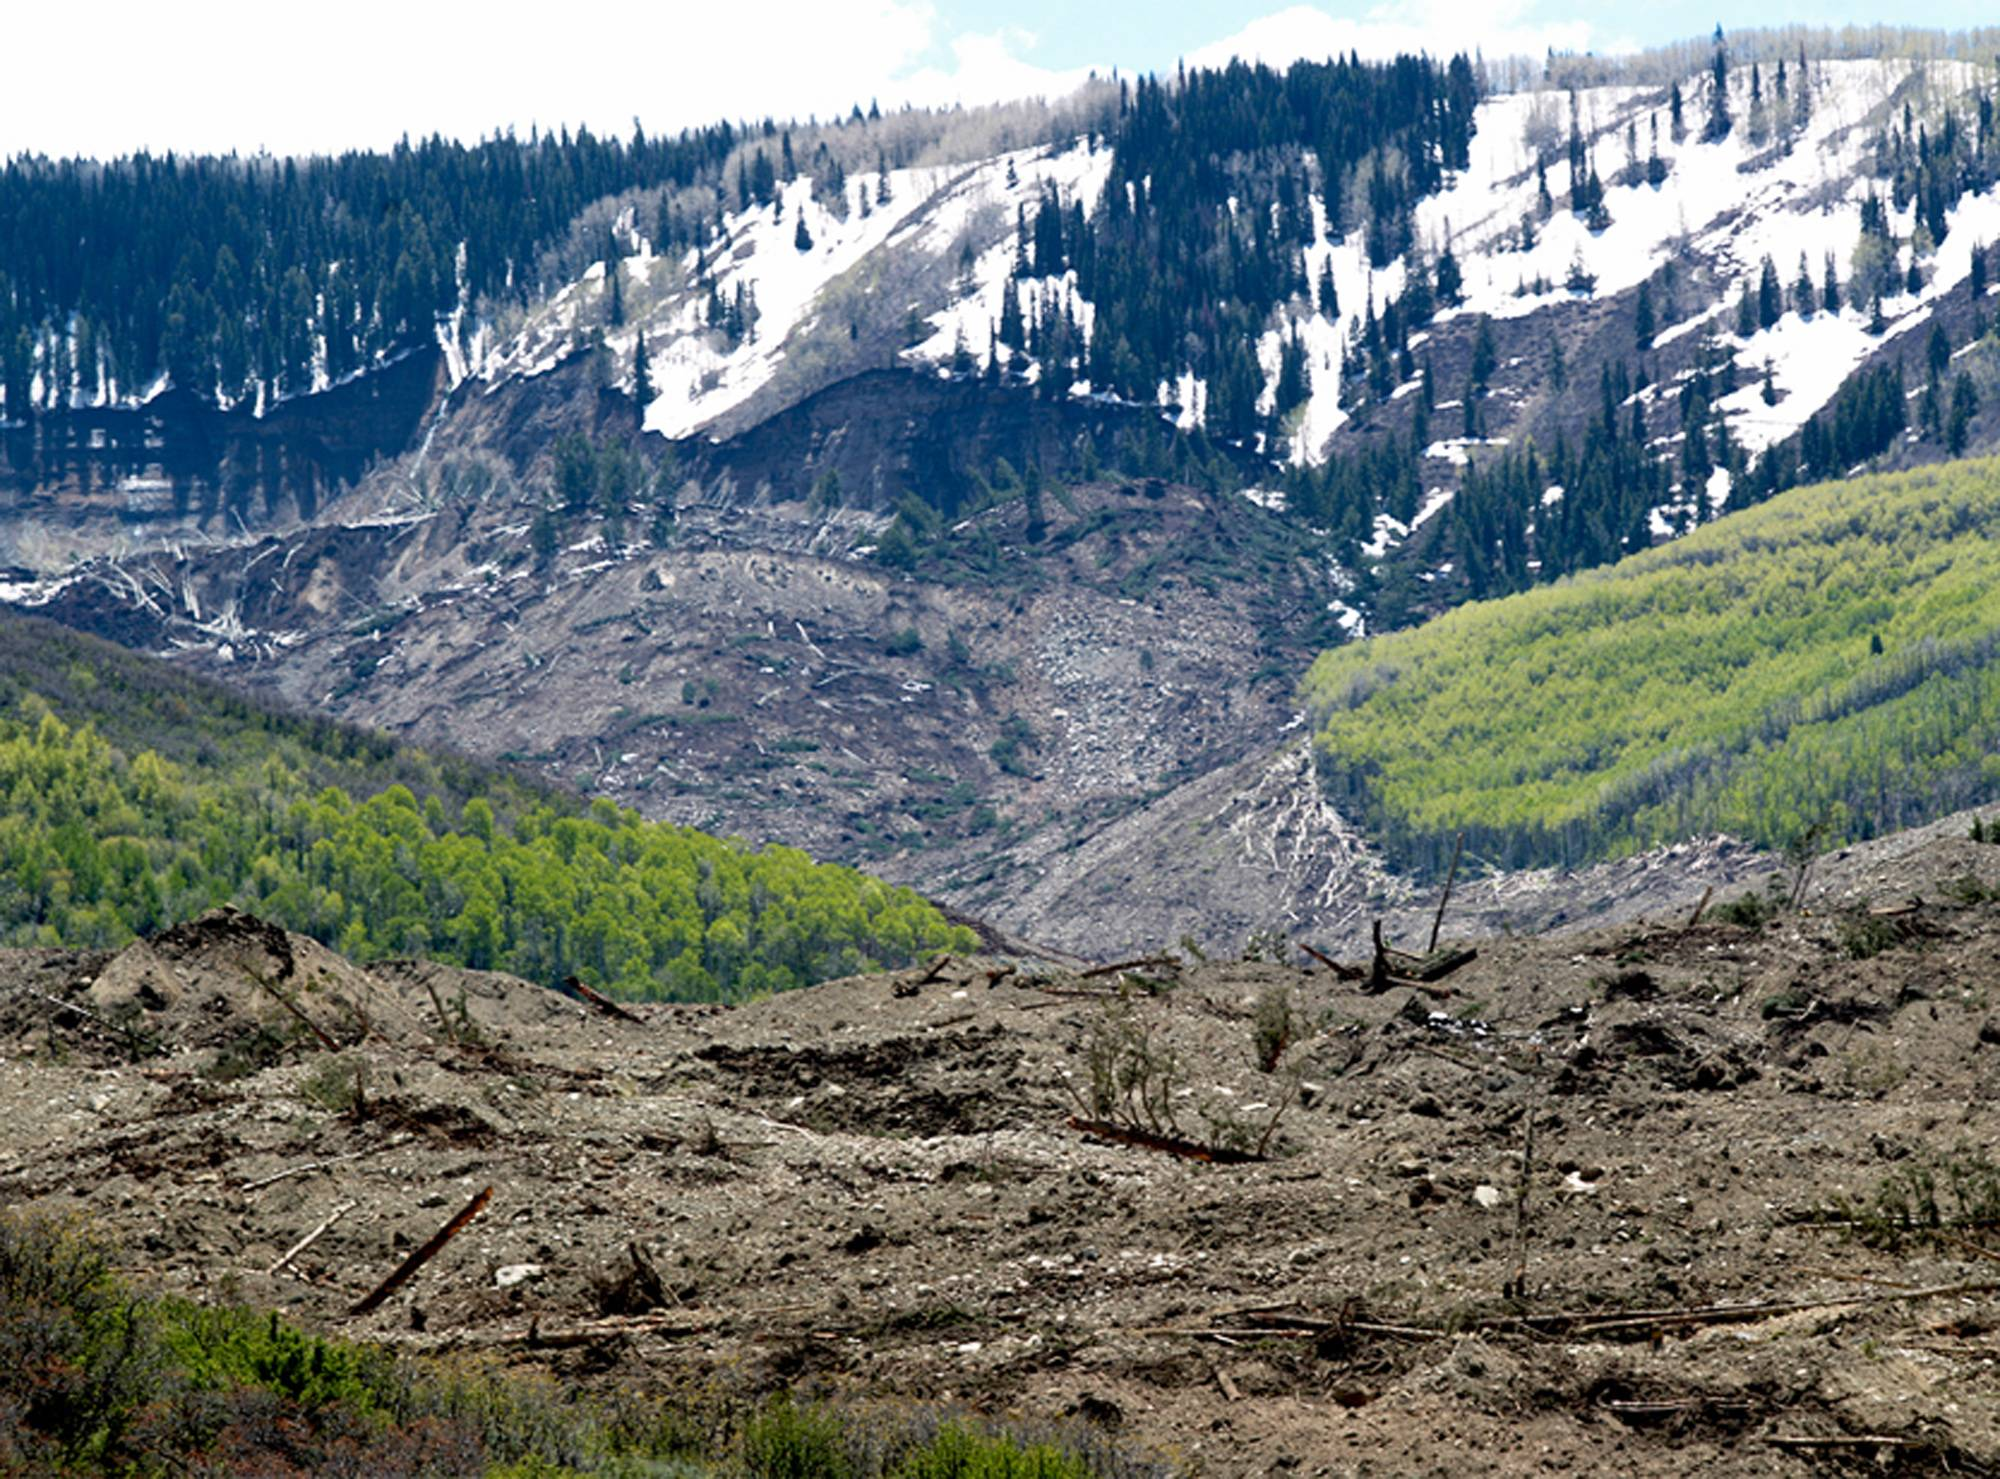 The results of a three-mile long mudslide are piled below Grand Mesa, where the slide started, background, in a remote part of western Colorado on Monday near the small town of Collbran. Rescue teams are searching for three men missing after a half-mile stretch of a ridge saturated with rain collapsed.